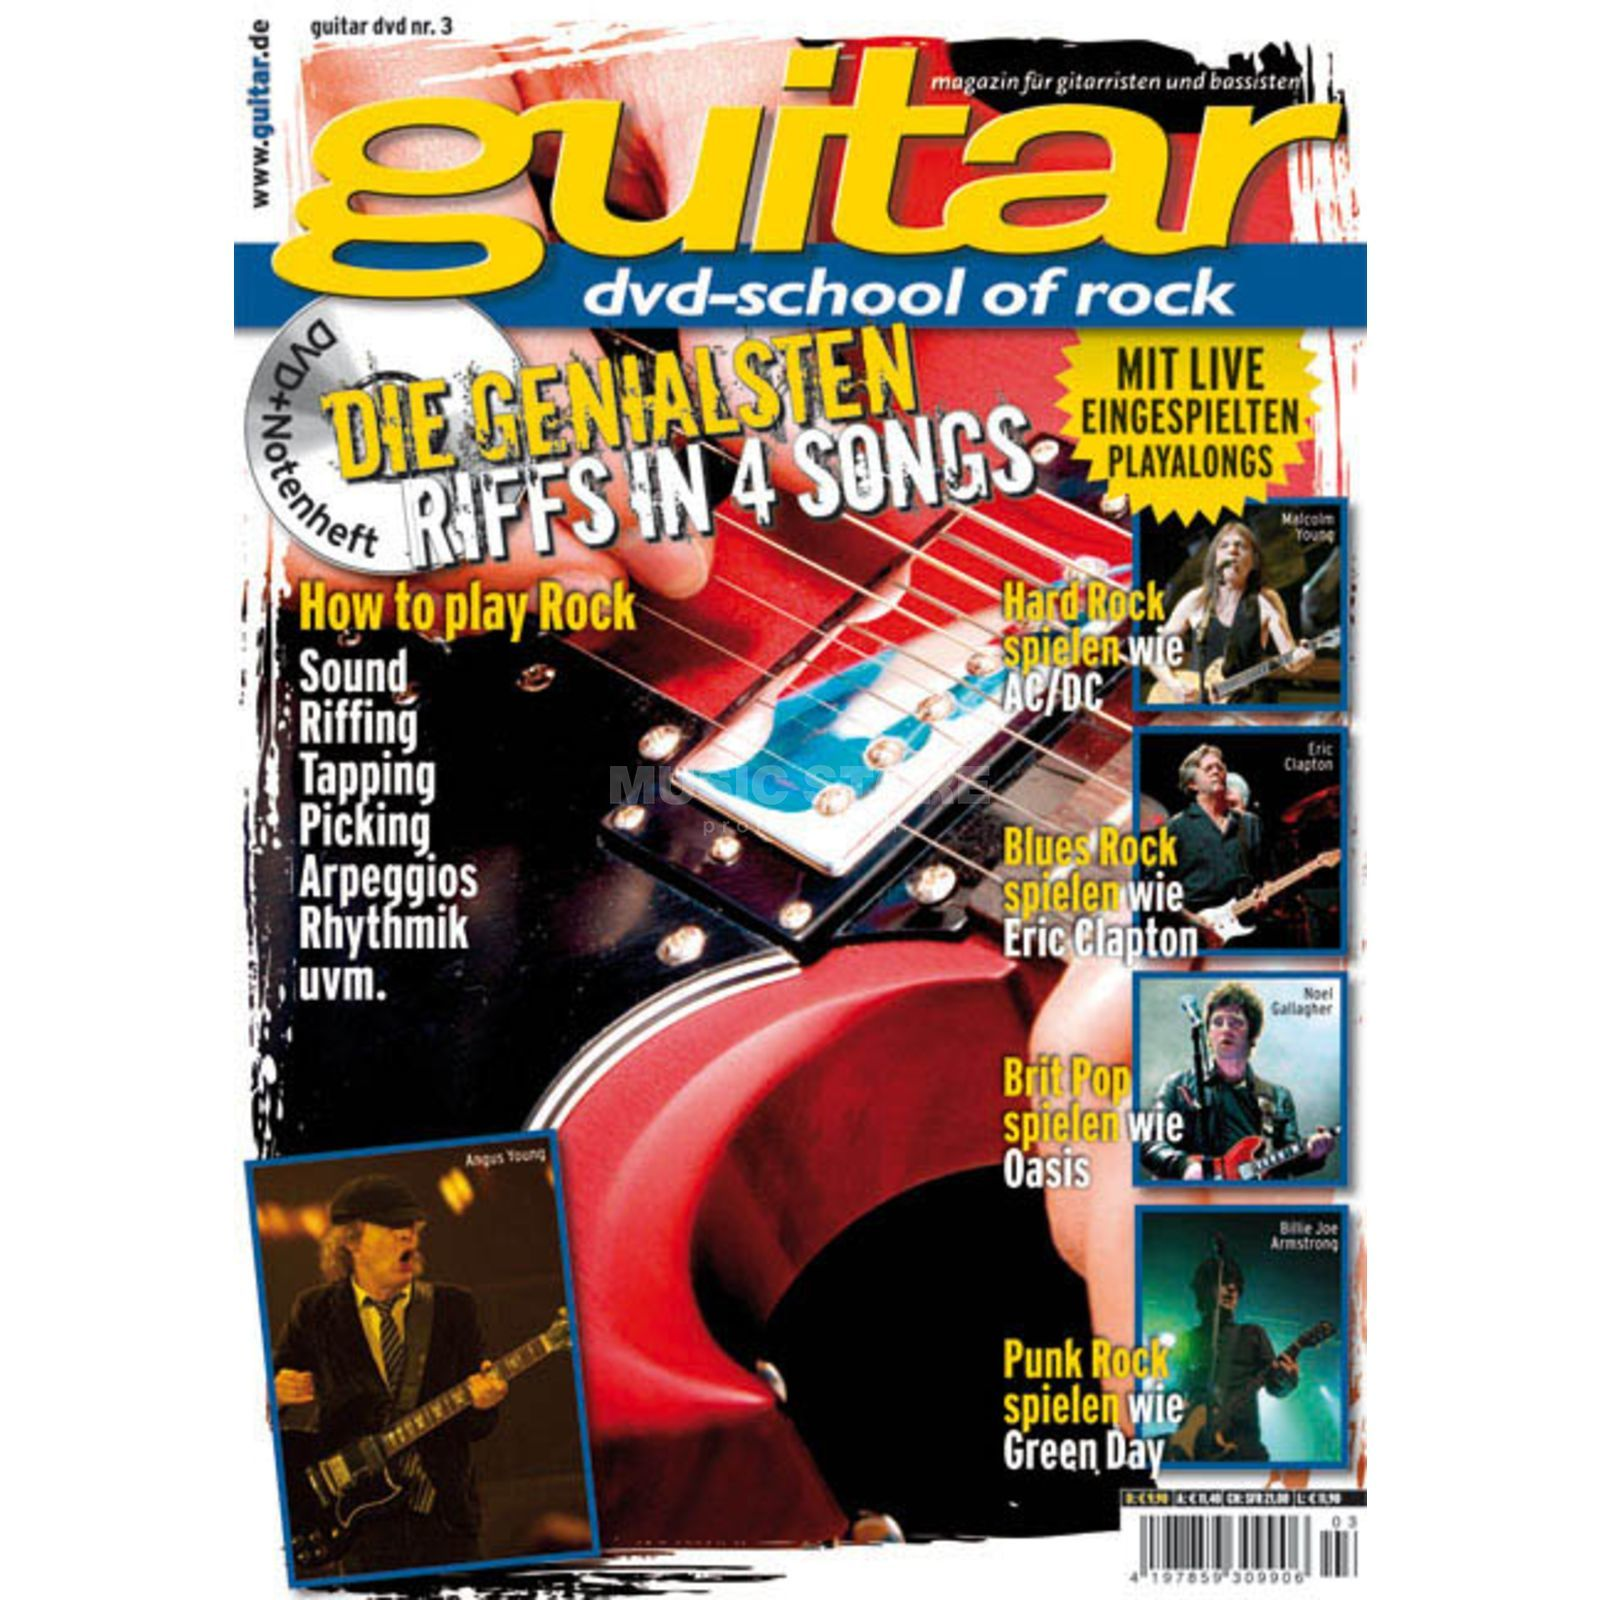 PPV Medien guitar Vol 3 - School of Rock DVD, Thomas Blug Produktbild